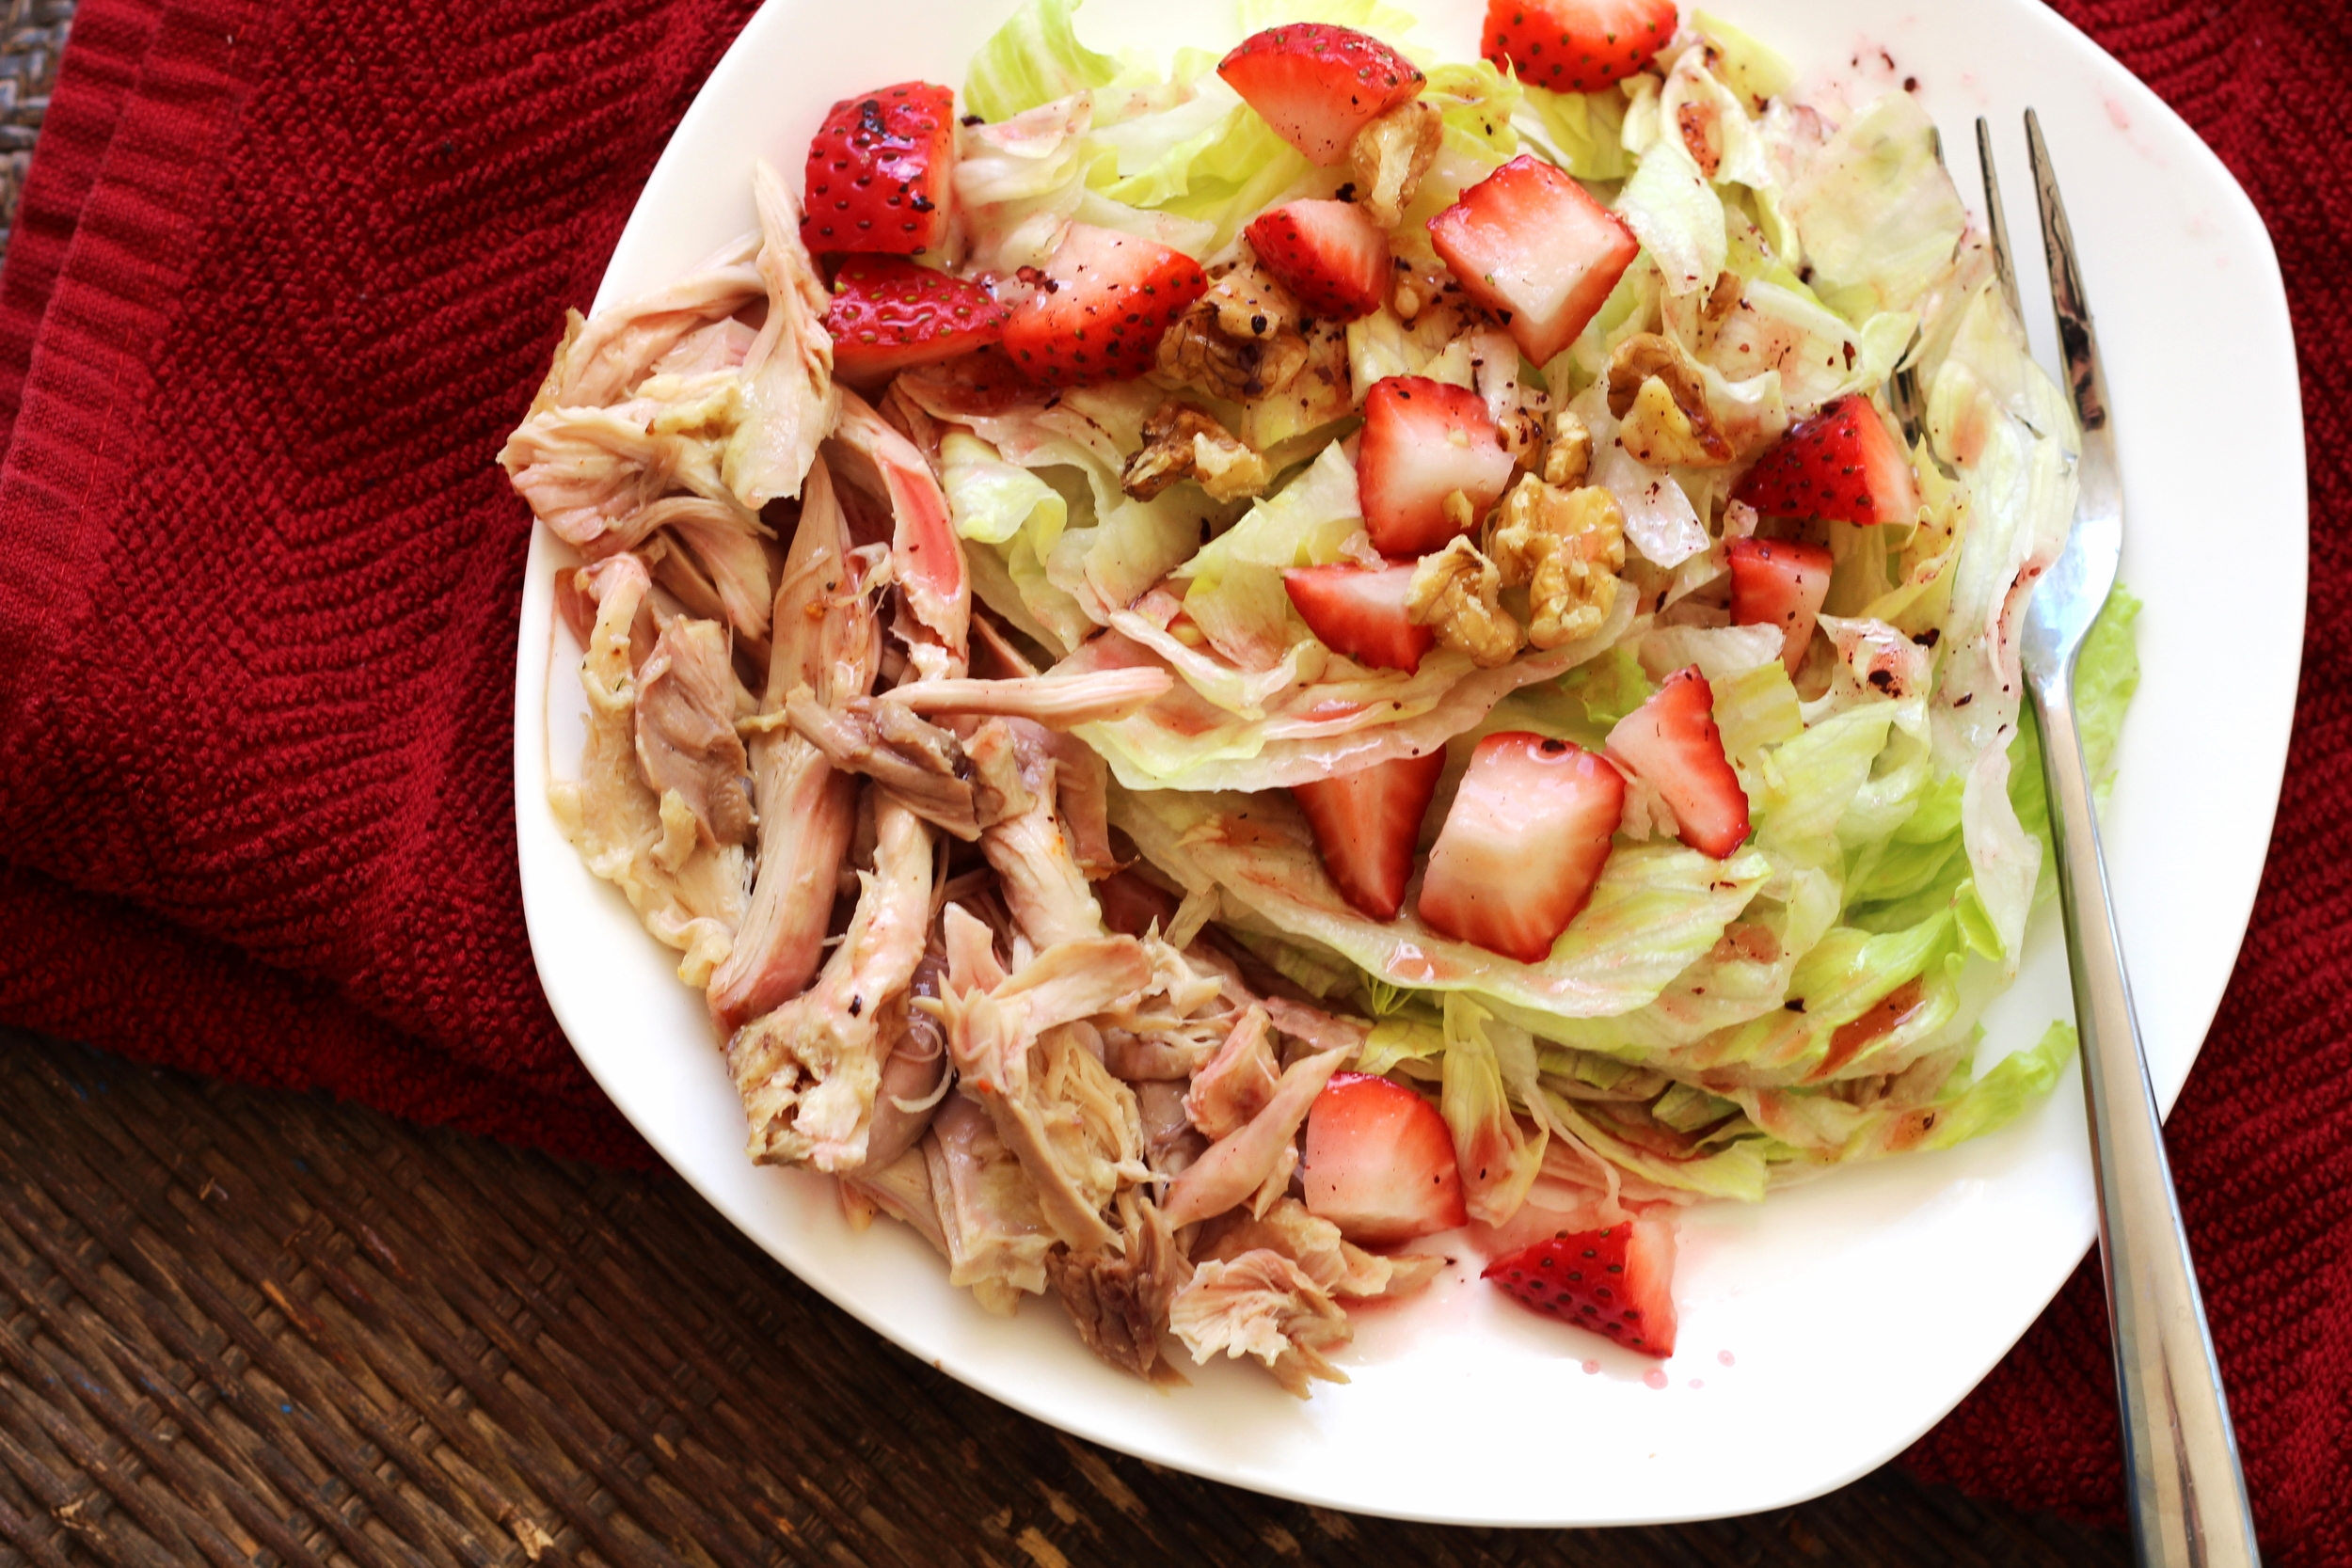 Lunch: Iceberg Lettuce Salad, With chicken thigh meat, strawberries and walnuts. olive oil and raspberry Vinaigrette added on top with walnuts!